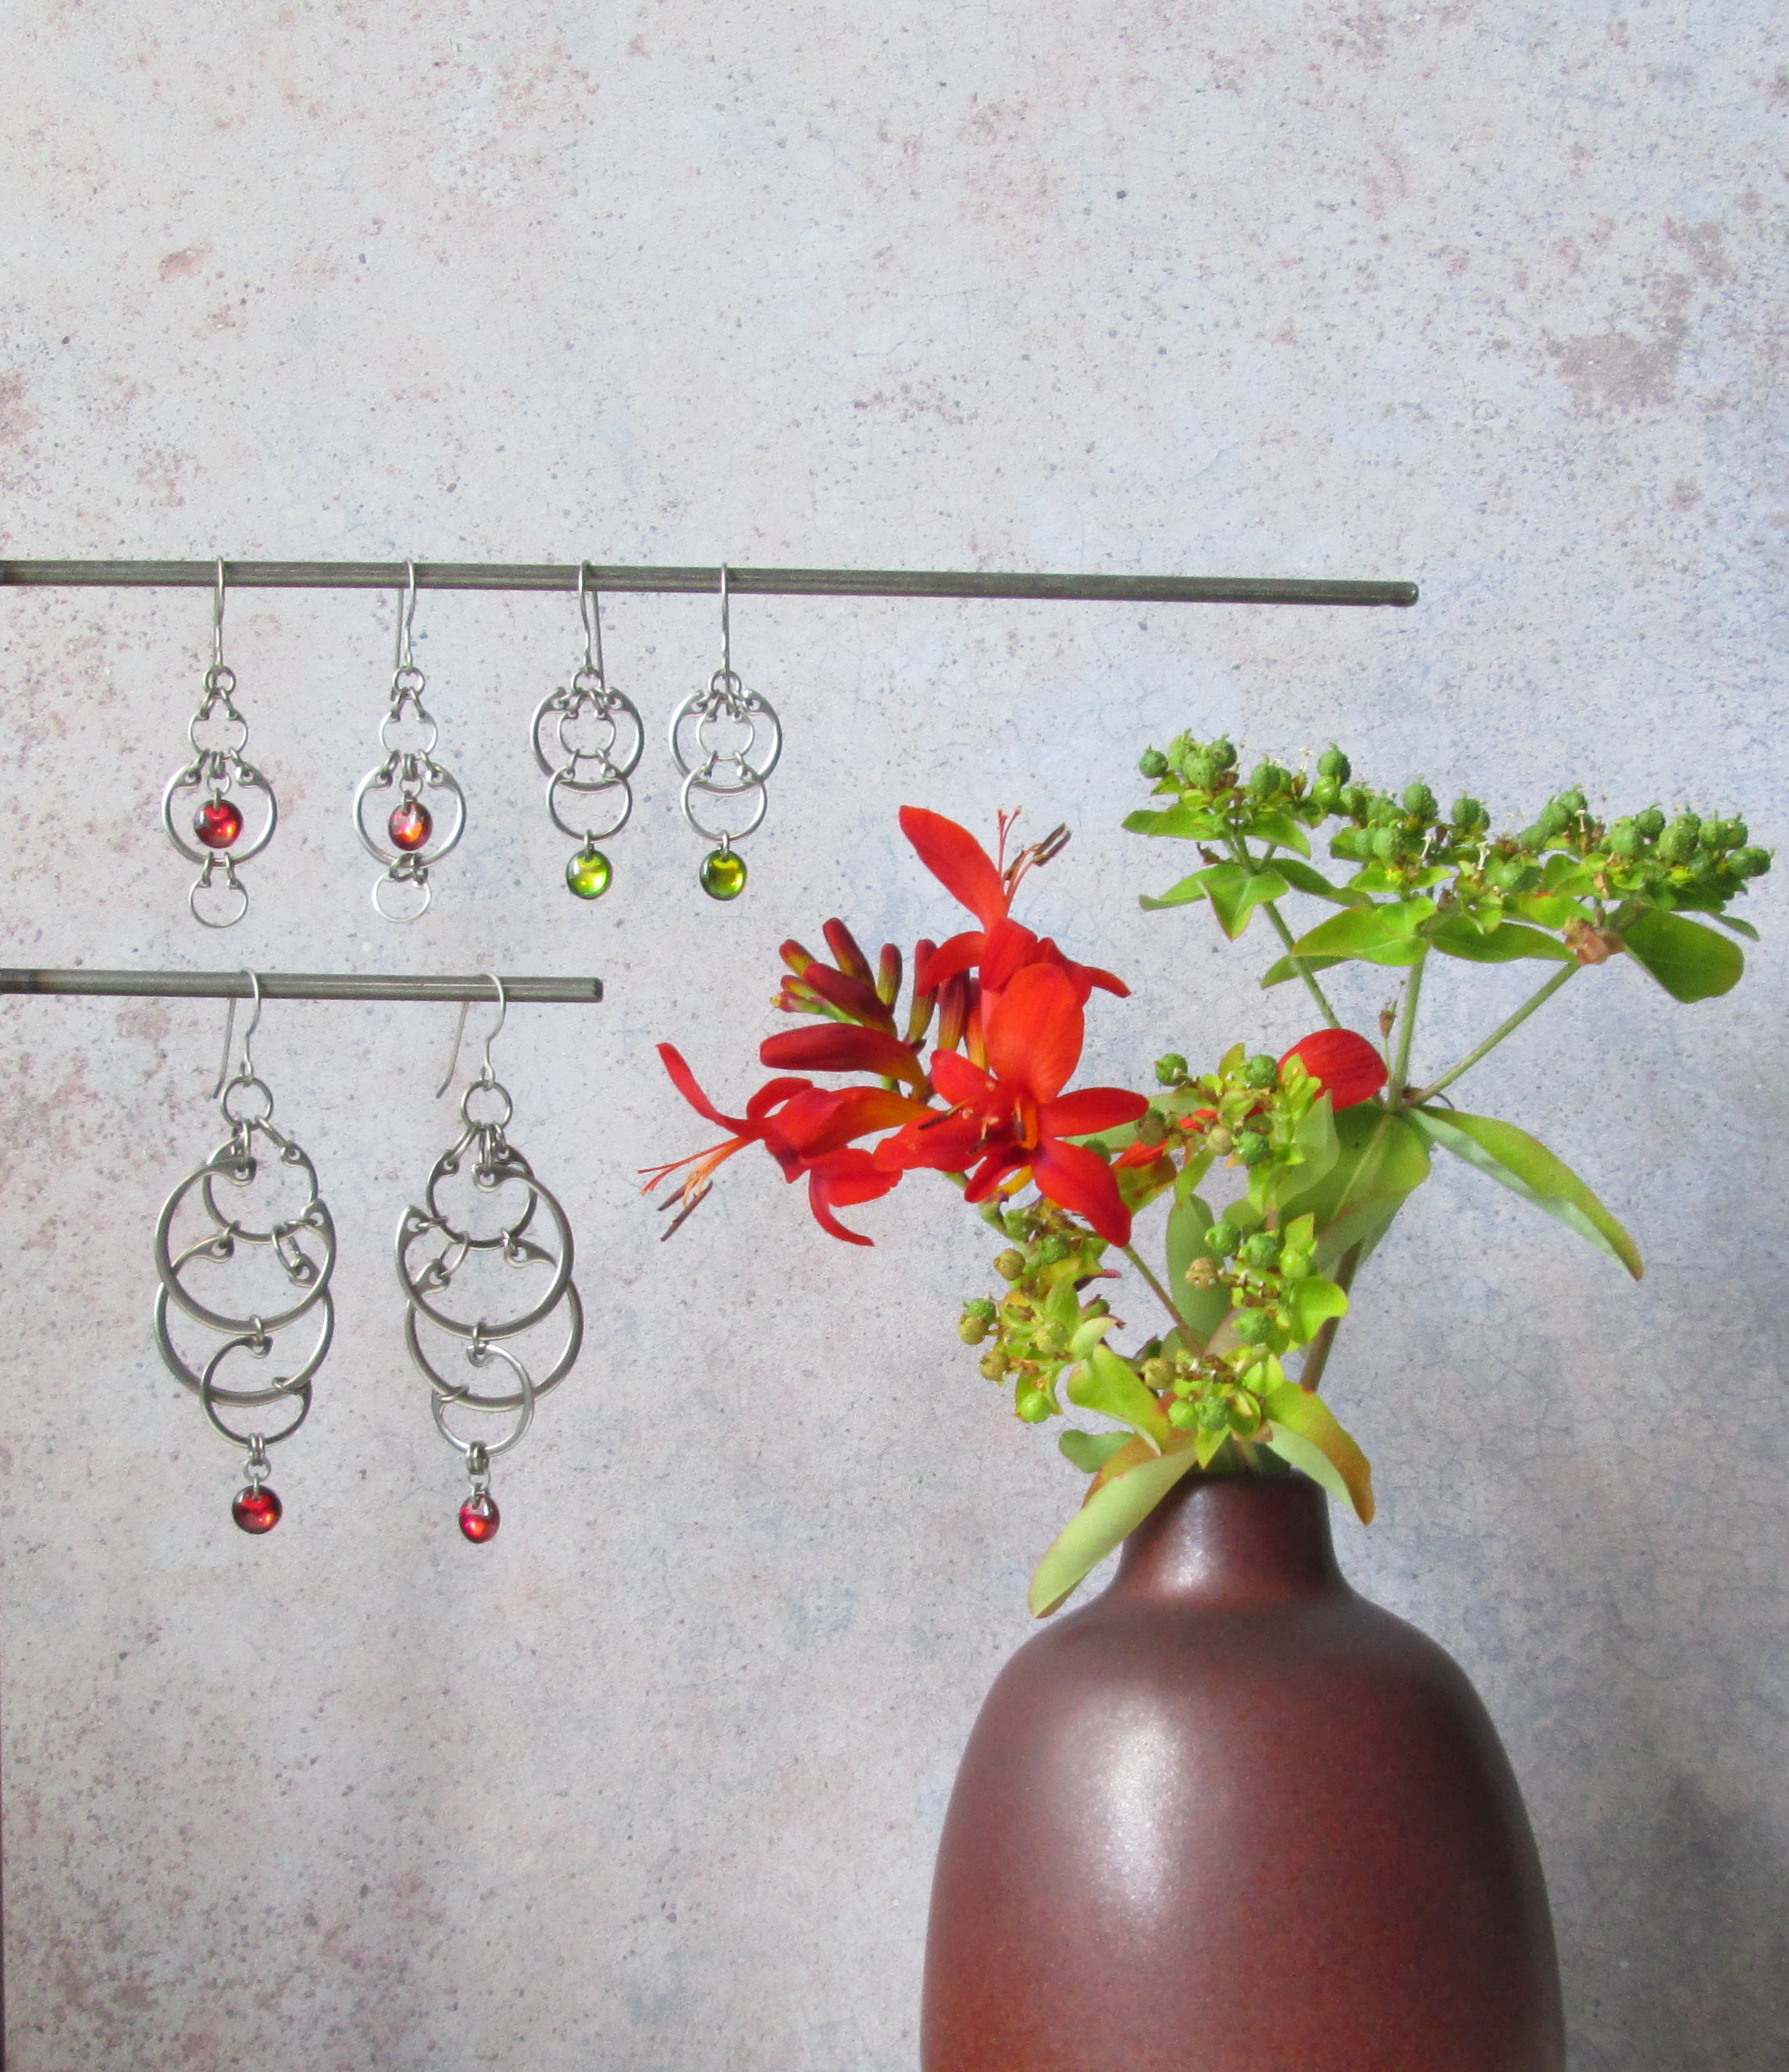 Red crocosmia flowers and green euphorbia buds with red and green earrings from Wraptillion's Industrial Glass collection.